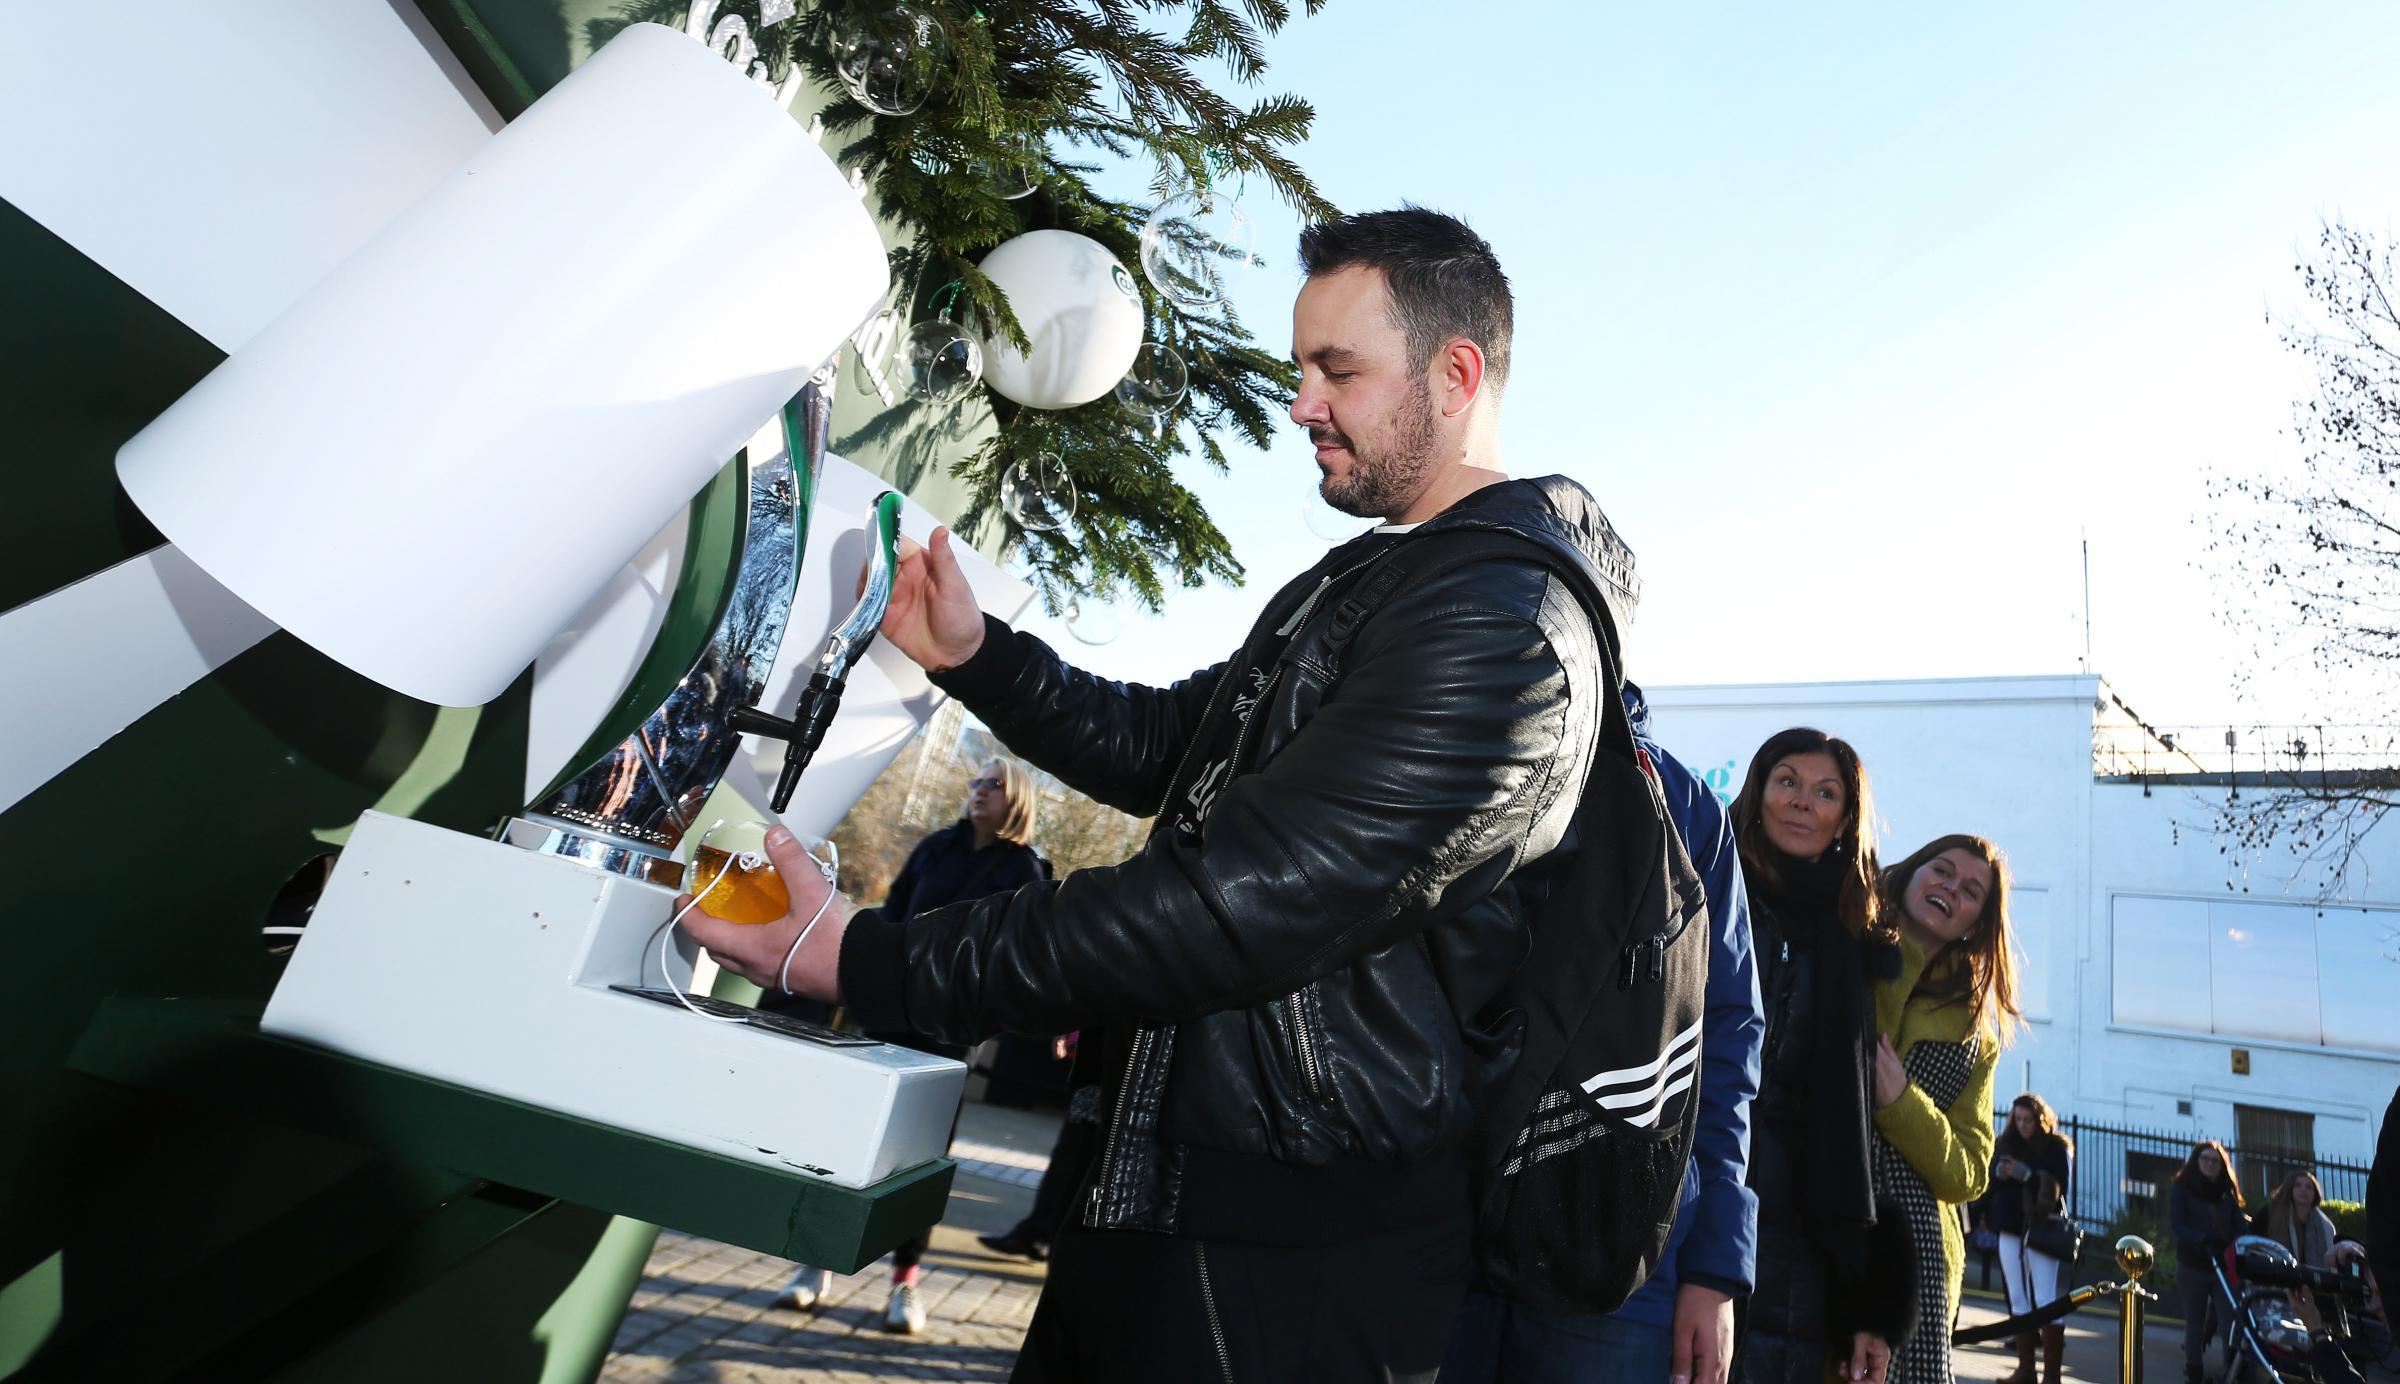 Carlsberg's Christmas tree on London's Southbank was dispensing free beer to passers-by